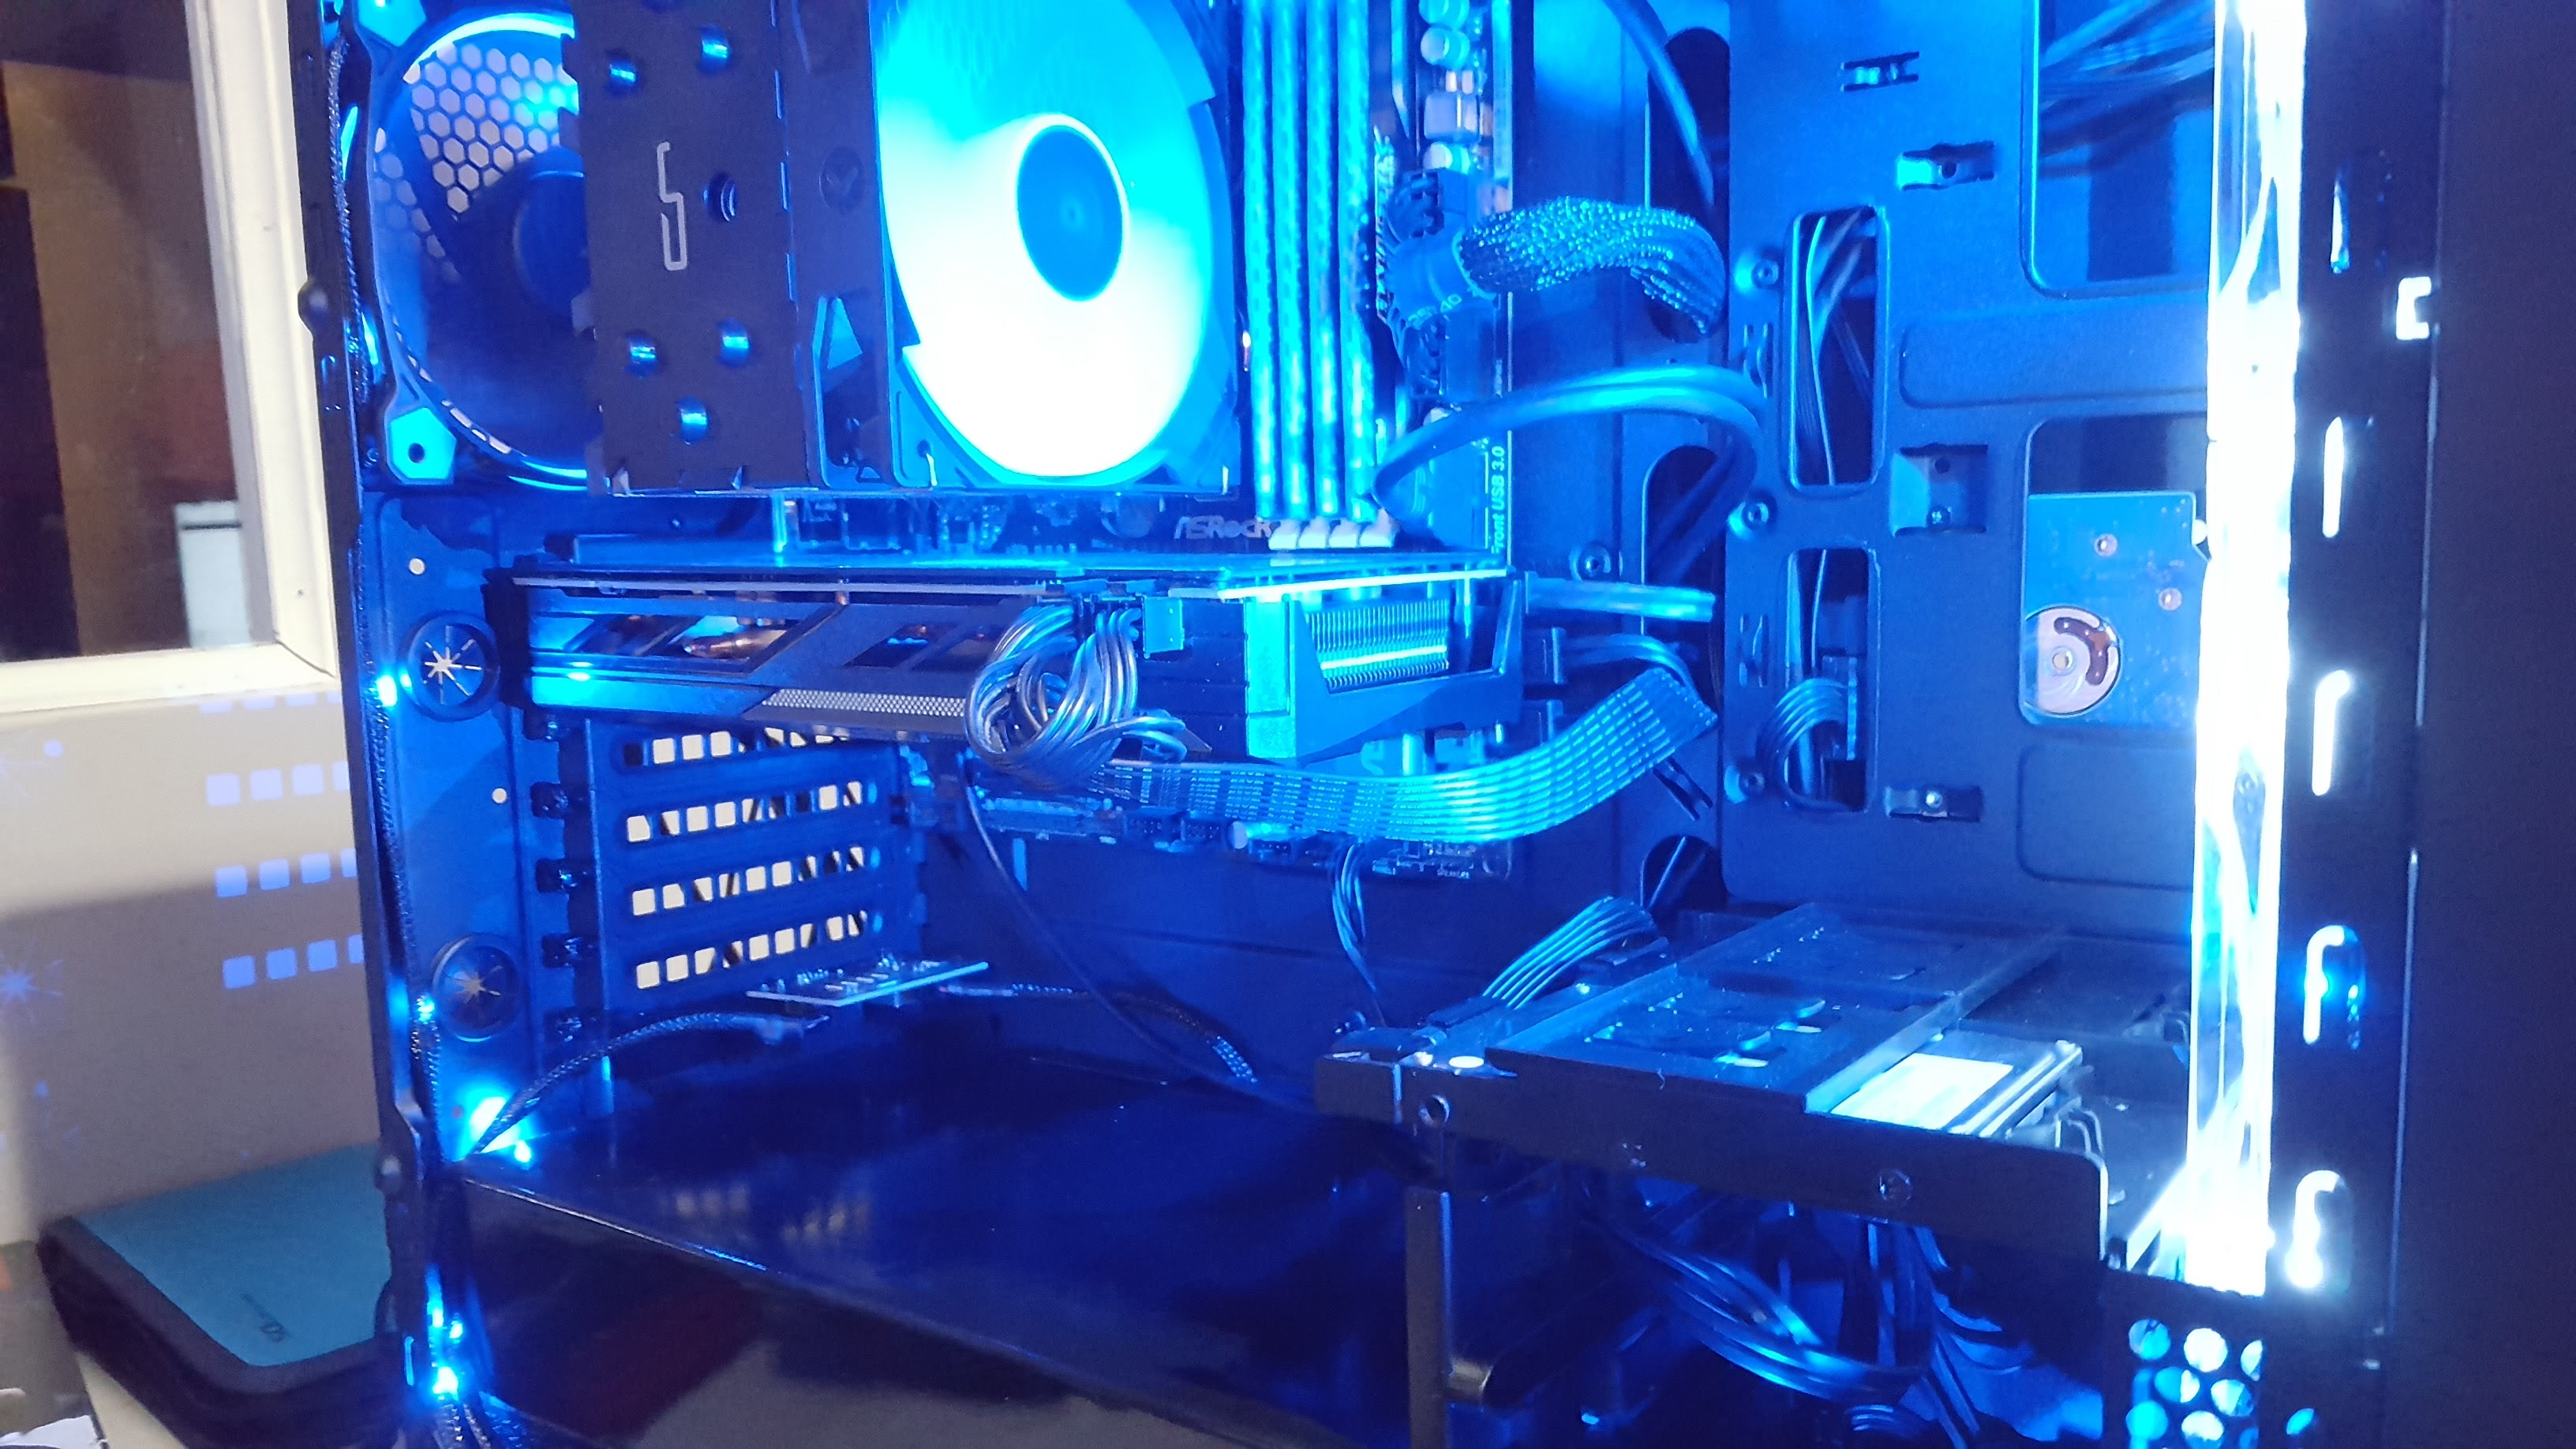 Weeaboo Pc Build